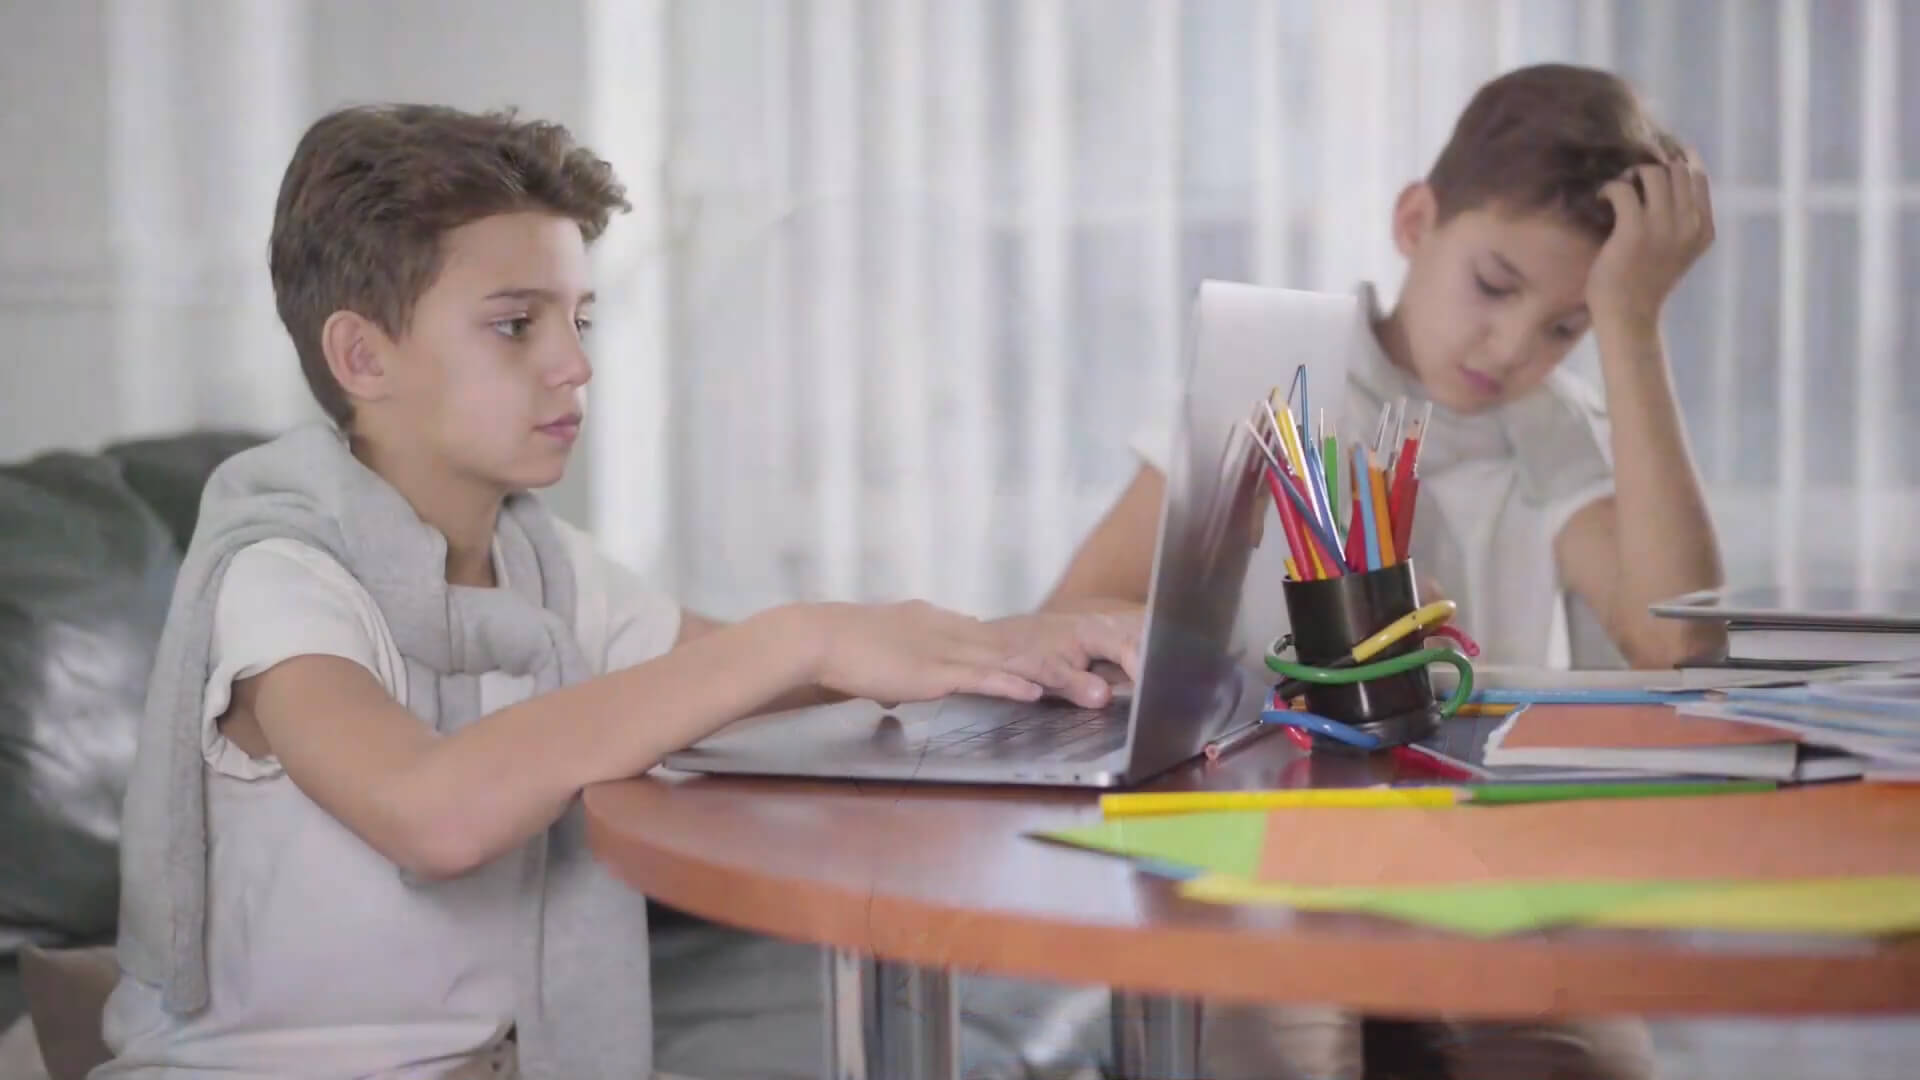 Using Touch Screens for Online Education